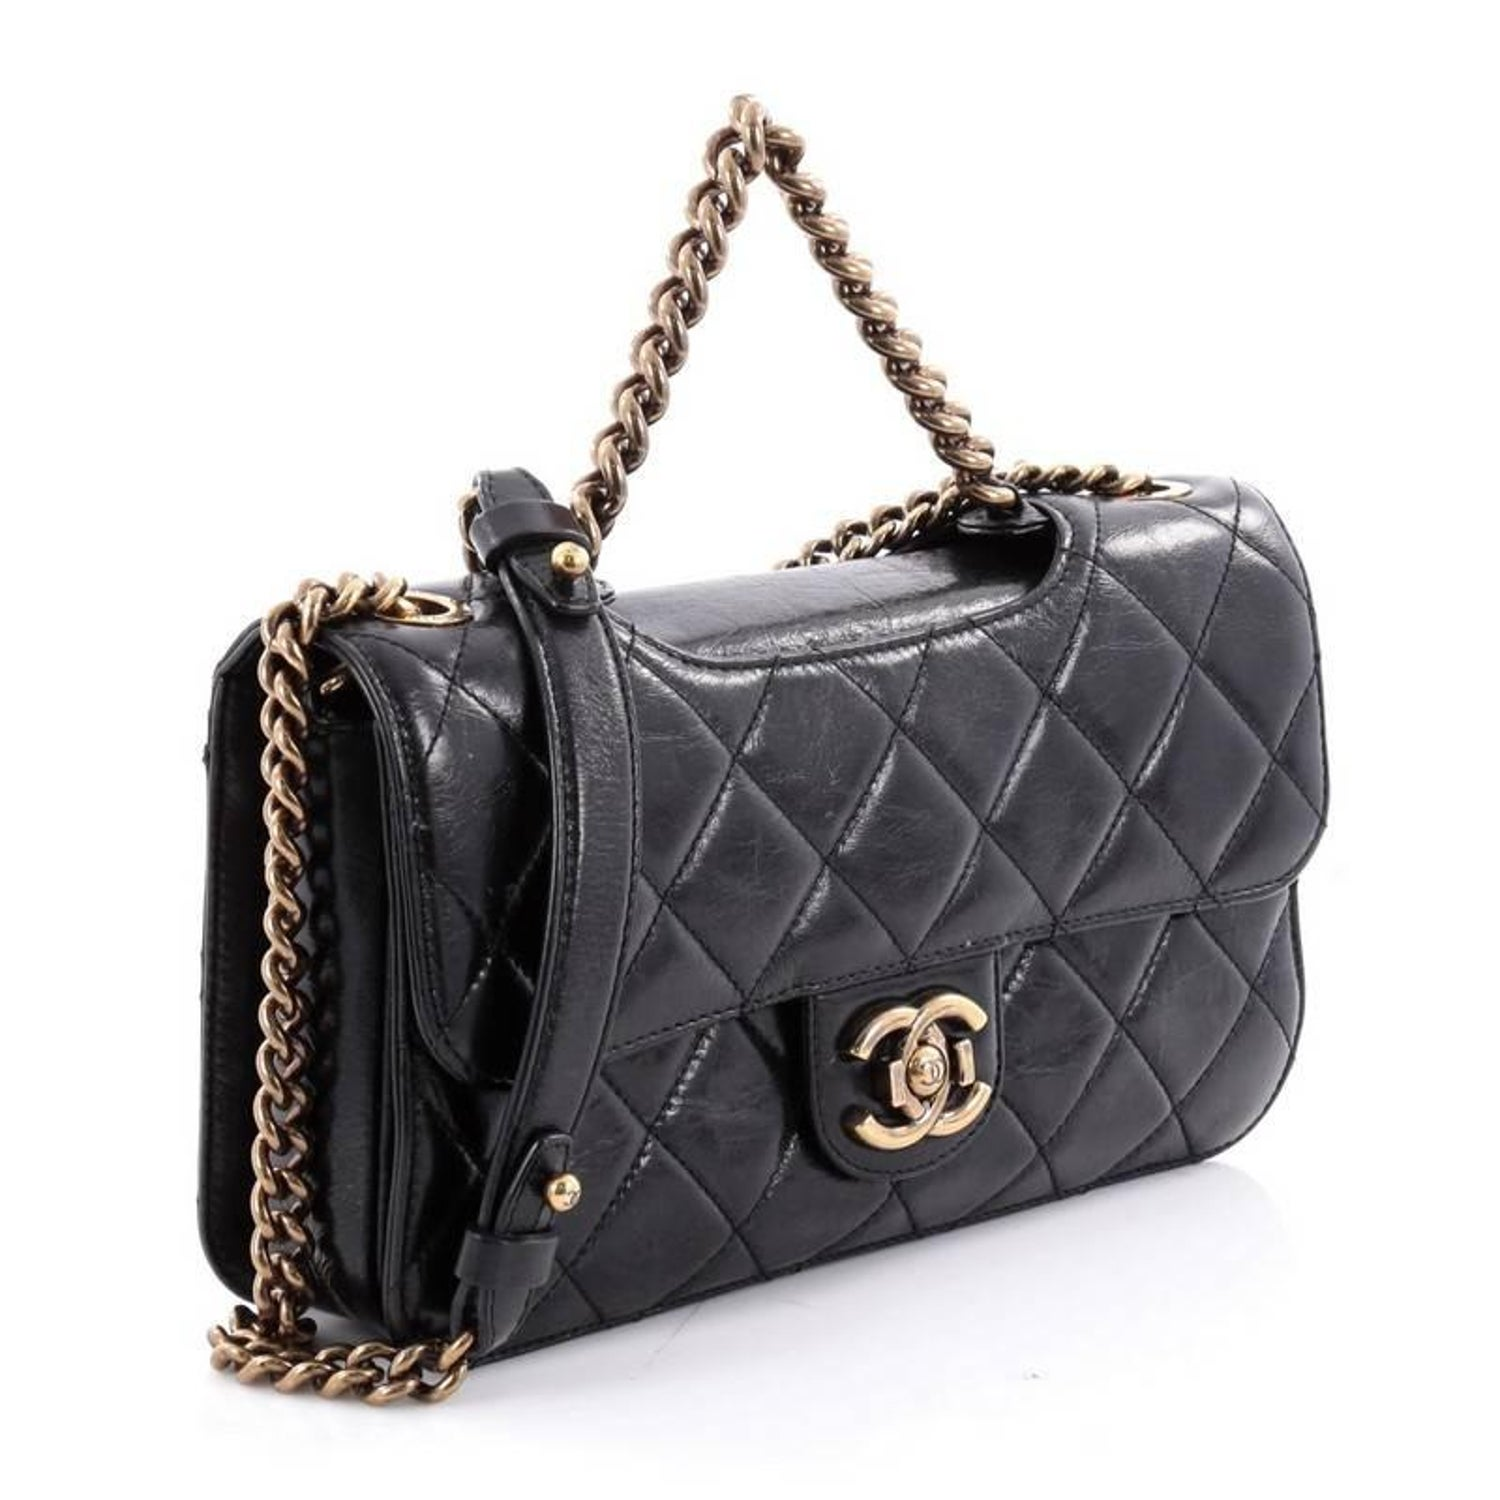 67d7099f69c2 Chanel Perfect Edge Flap Bag Quilted Glazed Calfskin Small at 1stdibs